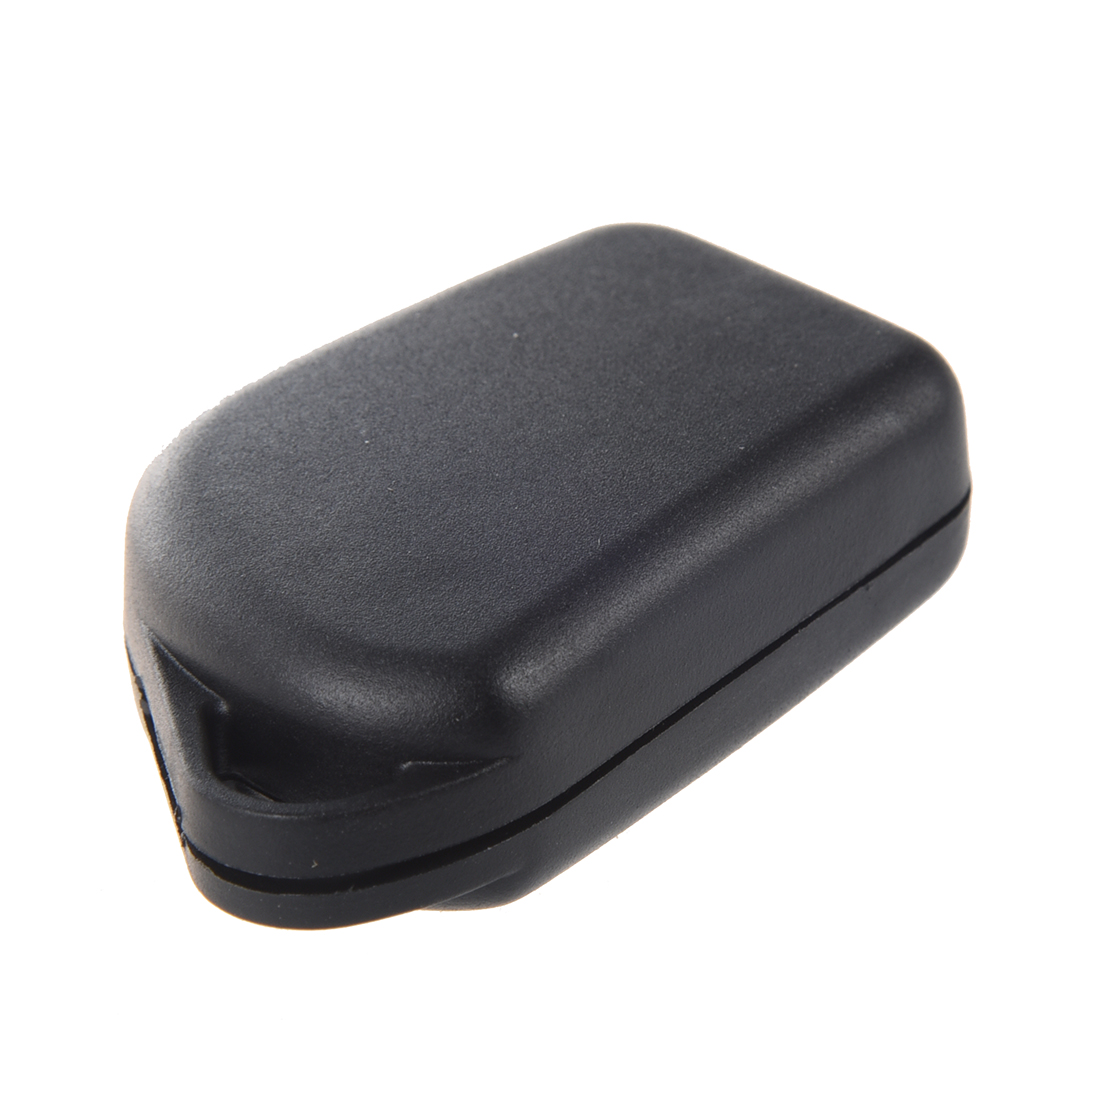 coque de cle telecommande voiture 2 boutons pour citroen saxo citroen xsara p7 ebay. Black Bedroom Furniture Sets. Home Design Ideas